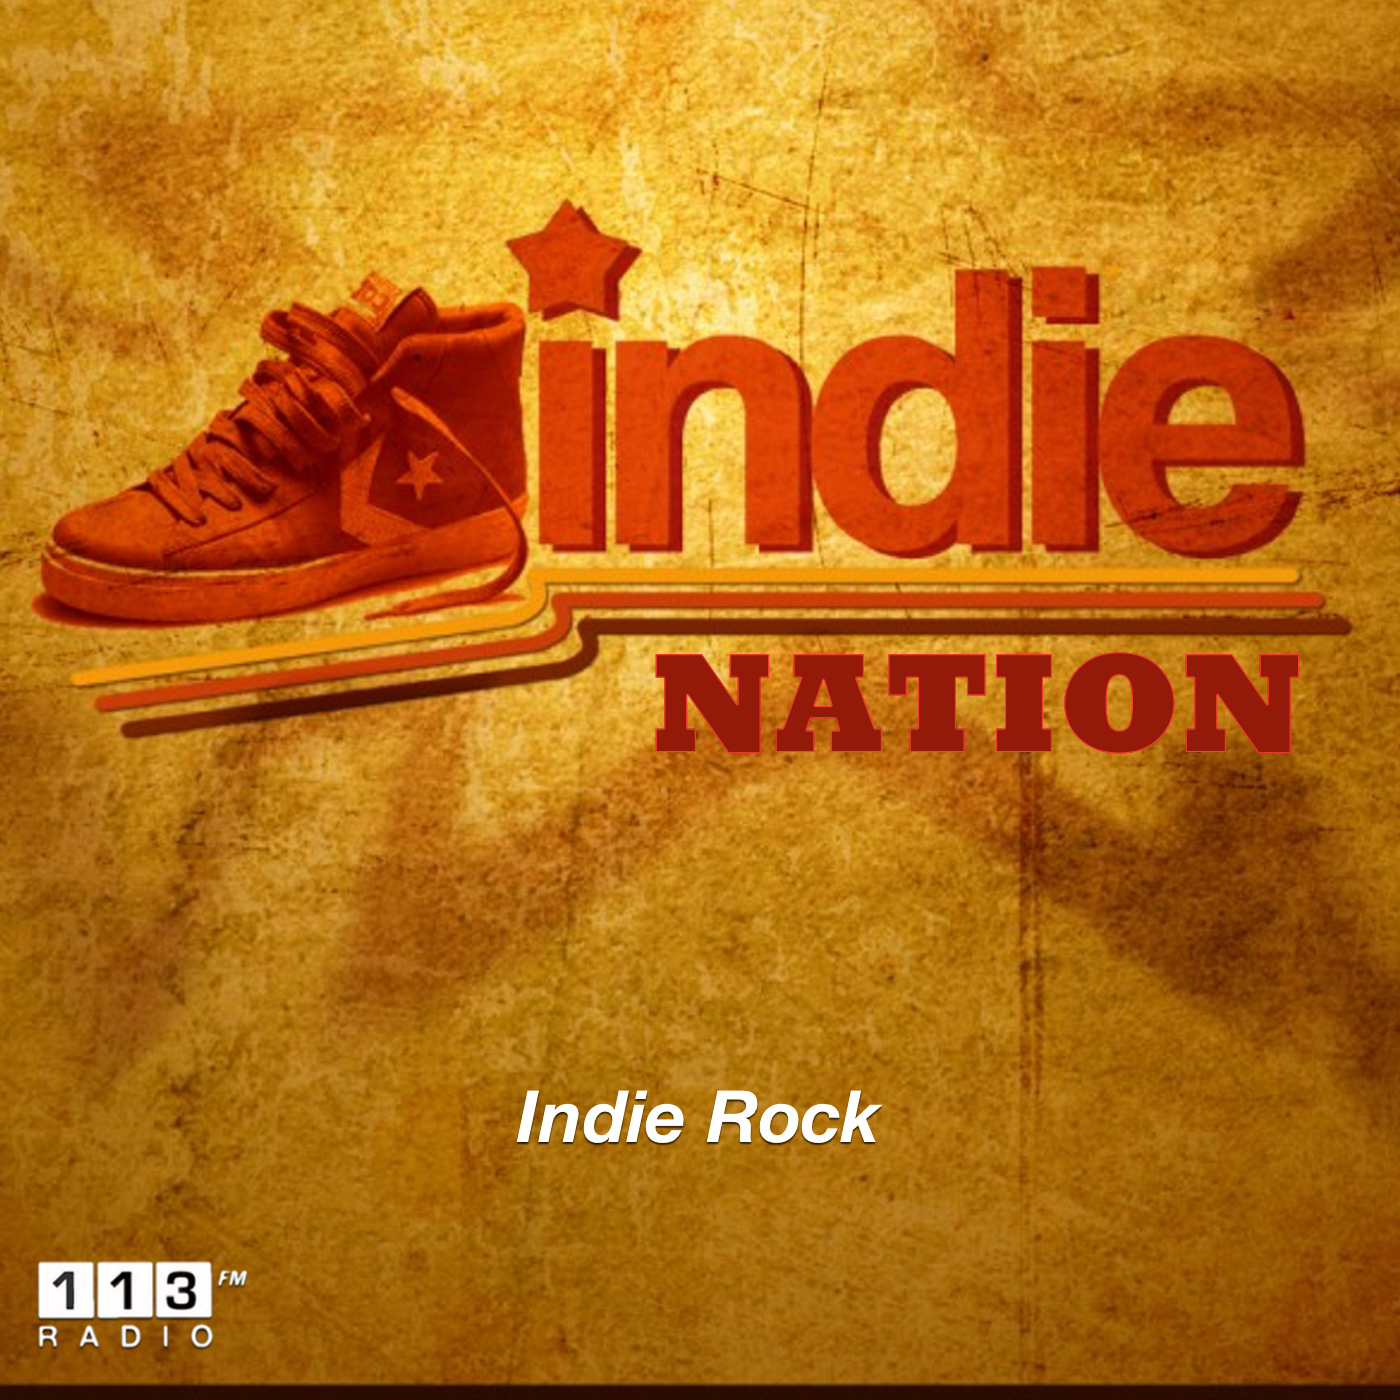 113.fm Indie Nation